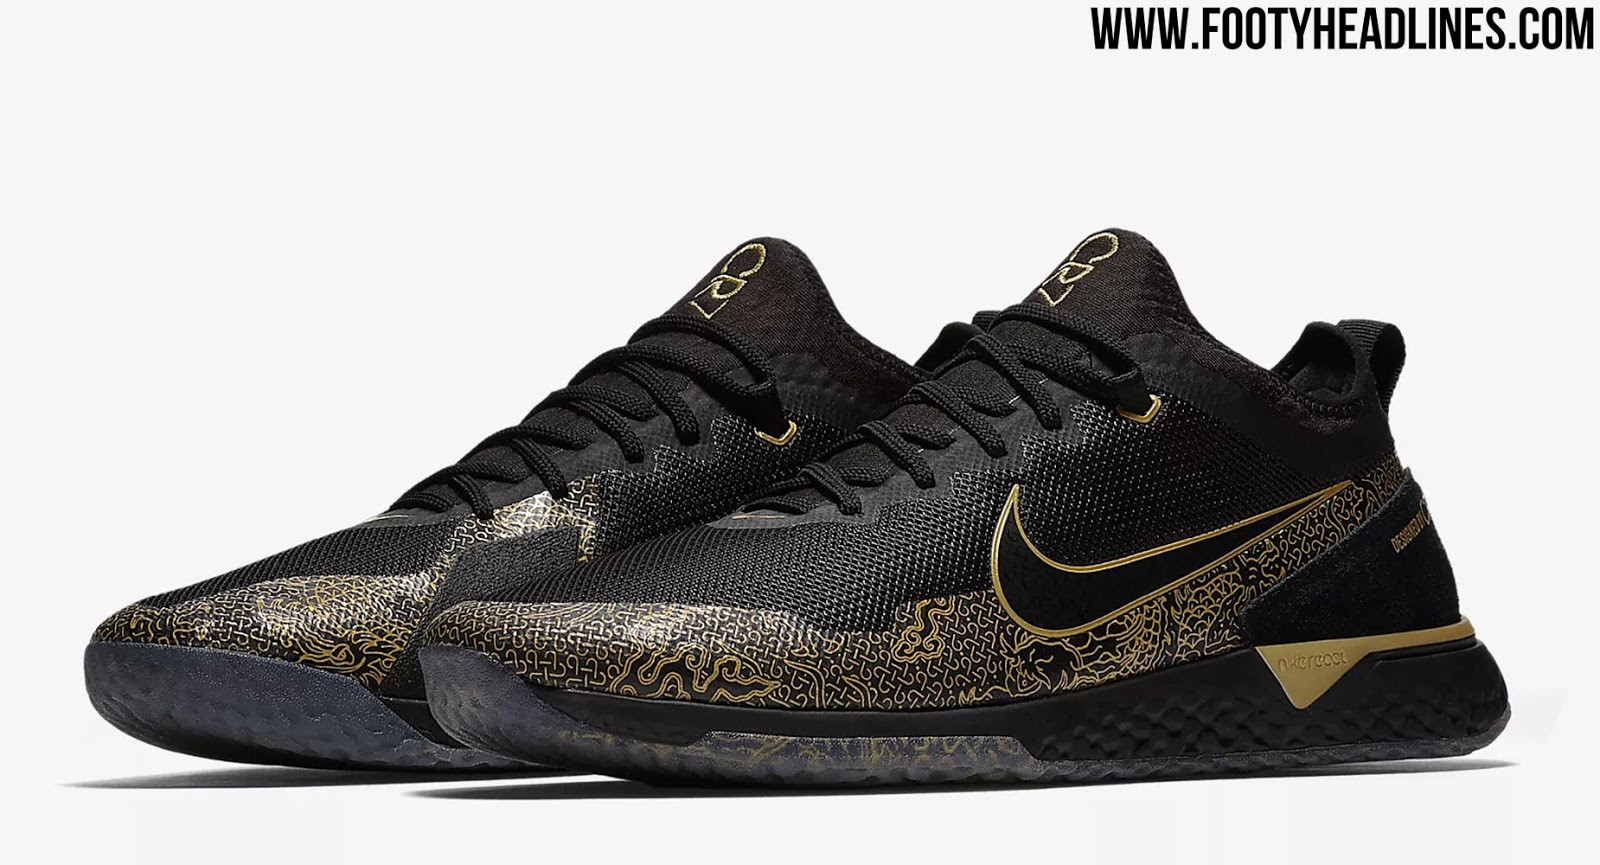 99c2844dad6bd ... free trainer 5.0 fc barcelona edition 0ce0f 95e42 coupon nike react fc  cr7 black metallic gold 7c711 cd705 ...